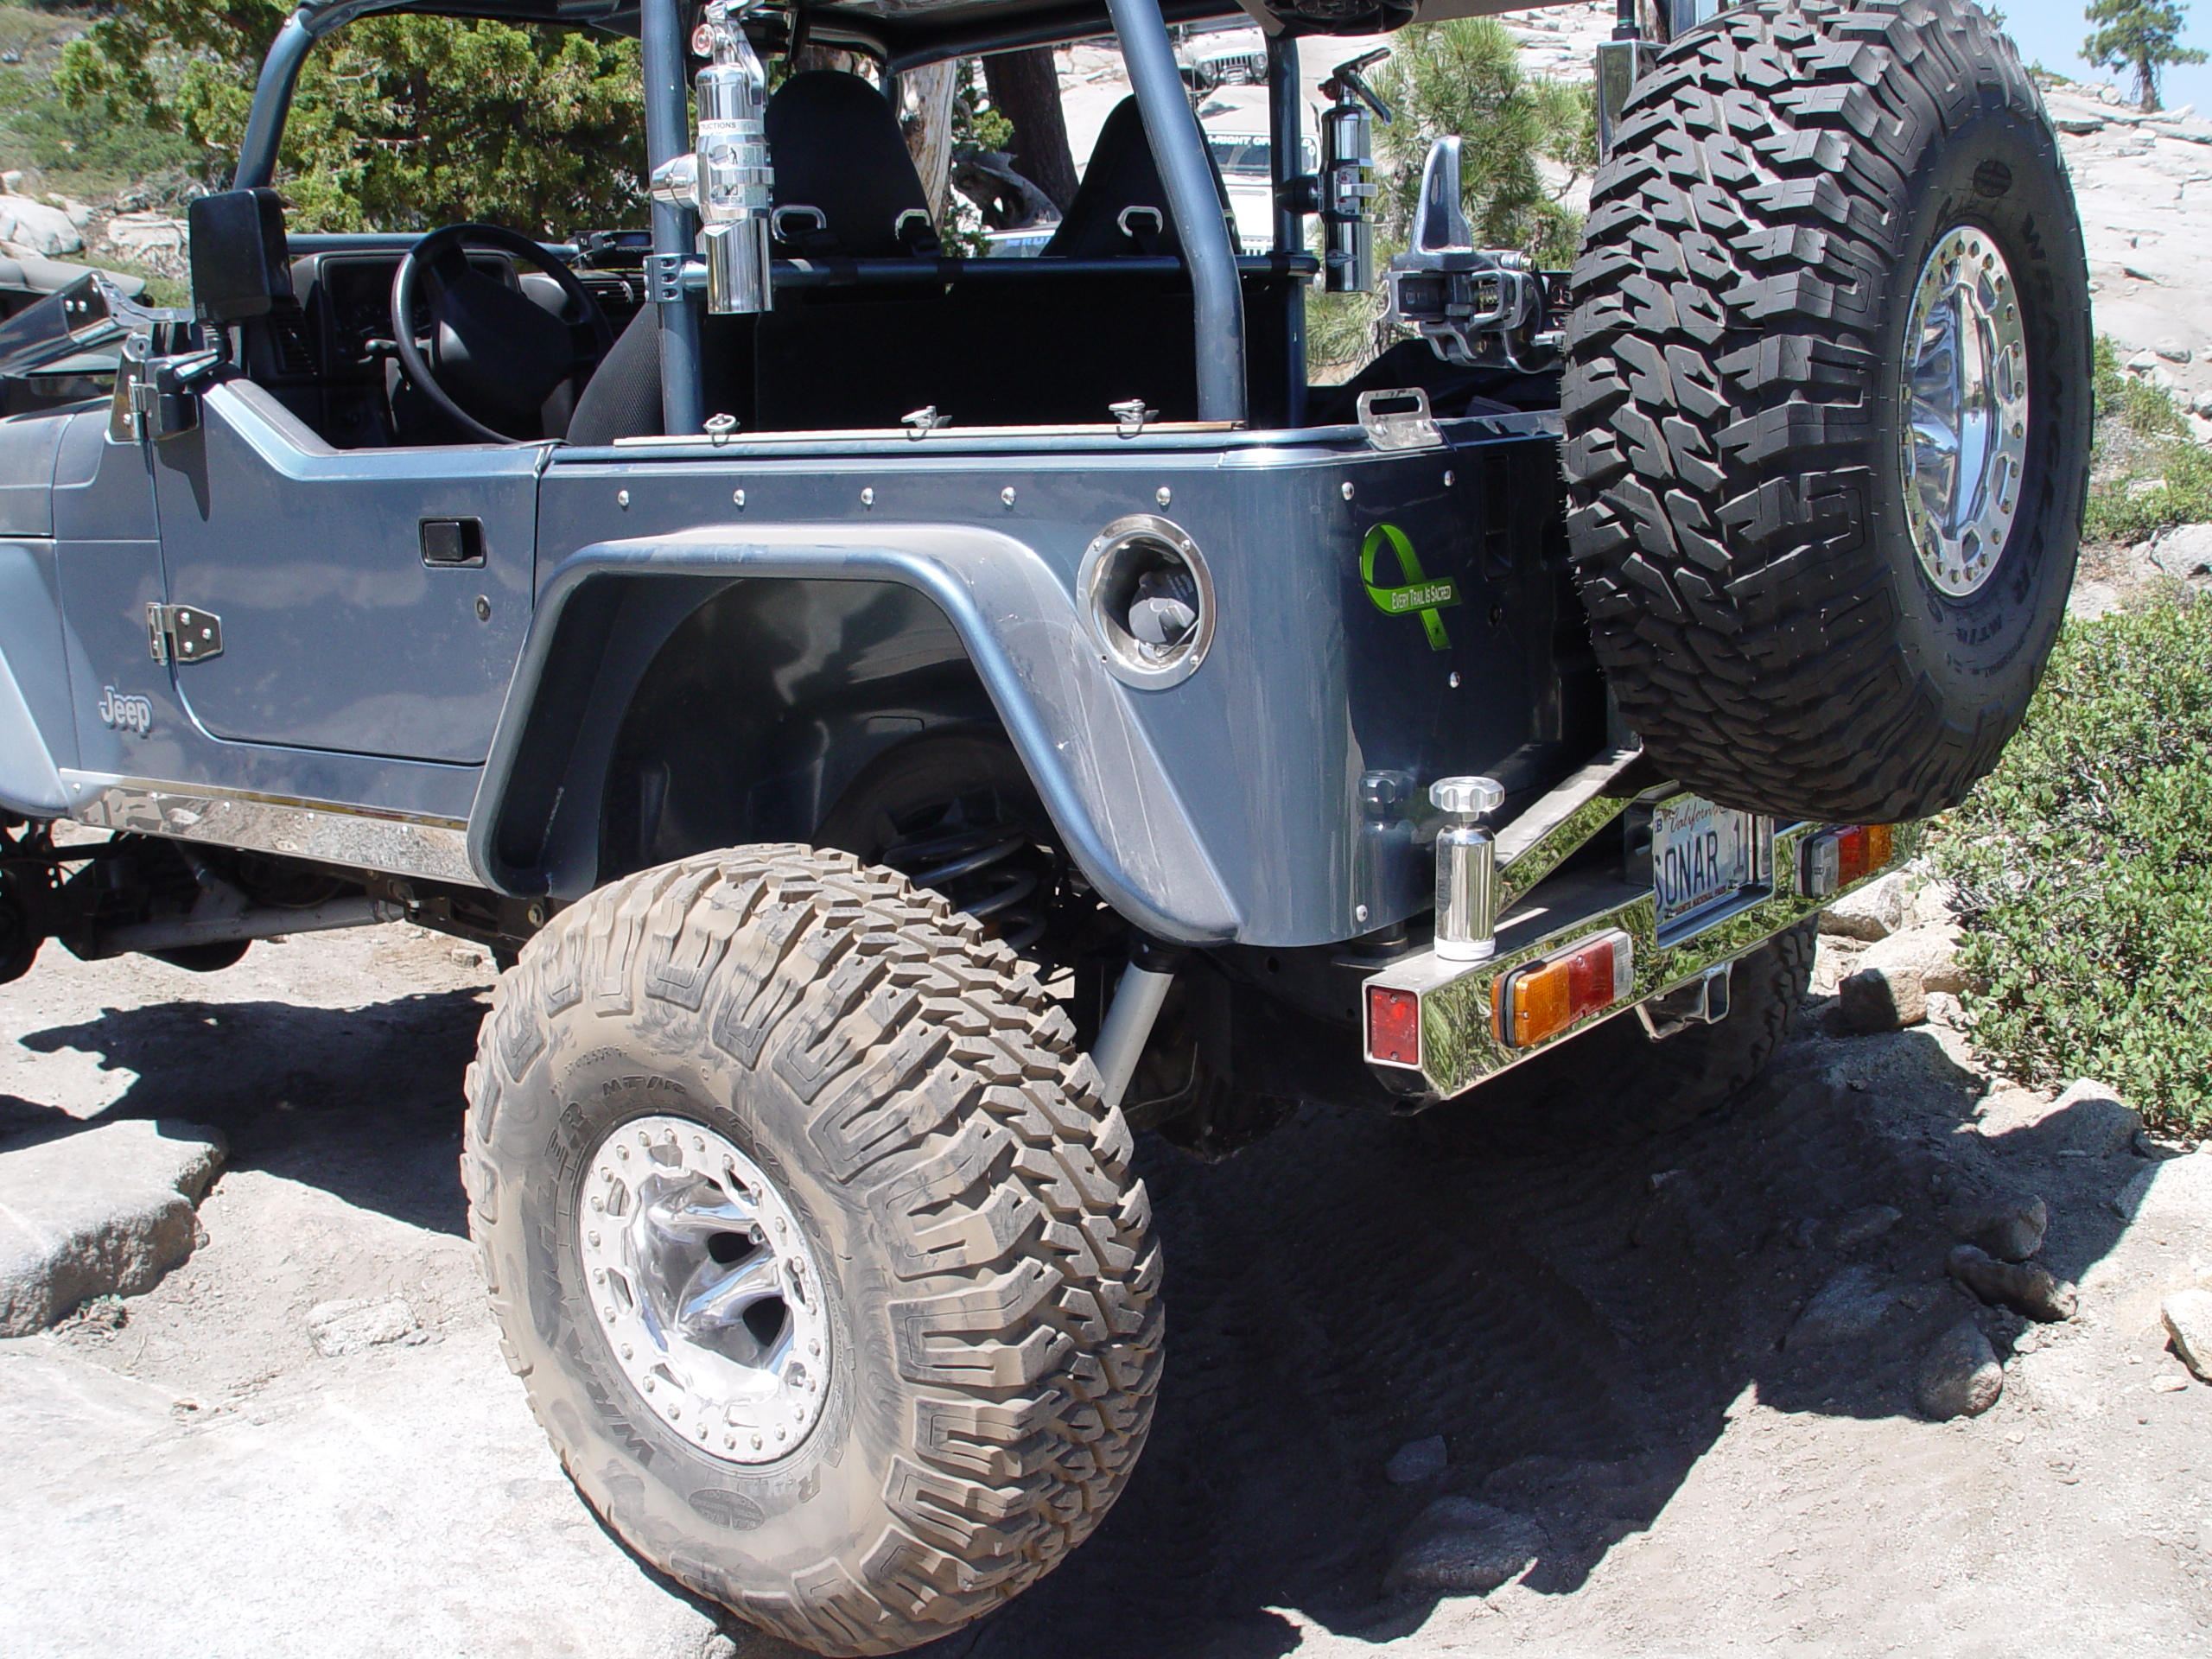 Jeep Tj Fender Flares W Corner Guards 6 Inch Flare 97 06 Wrangler Tj Tnt Customs Jeep Aftermarket Parts Tnt Customs